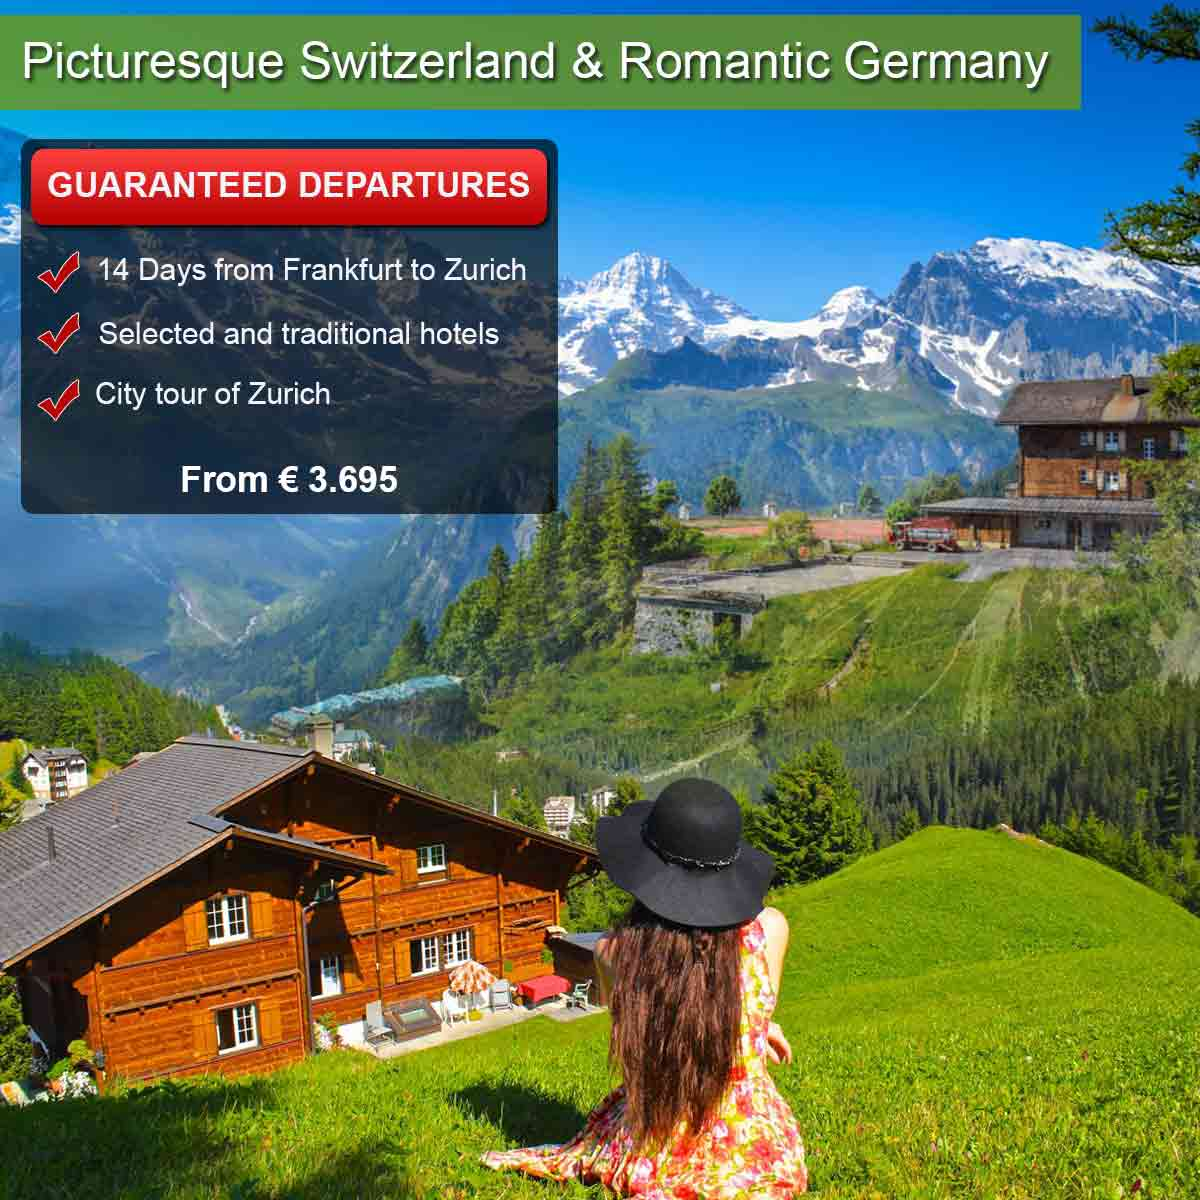 picturesque-switzerland-romantic-germany1